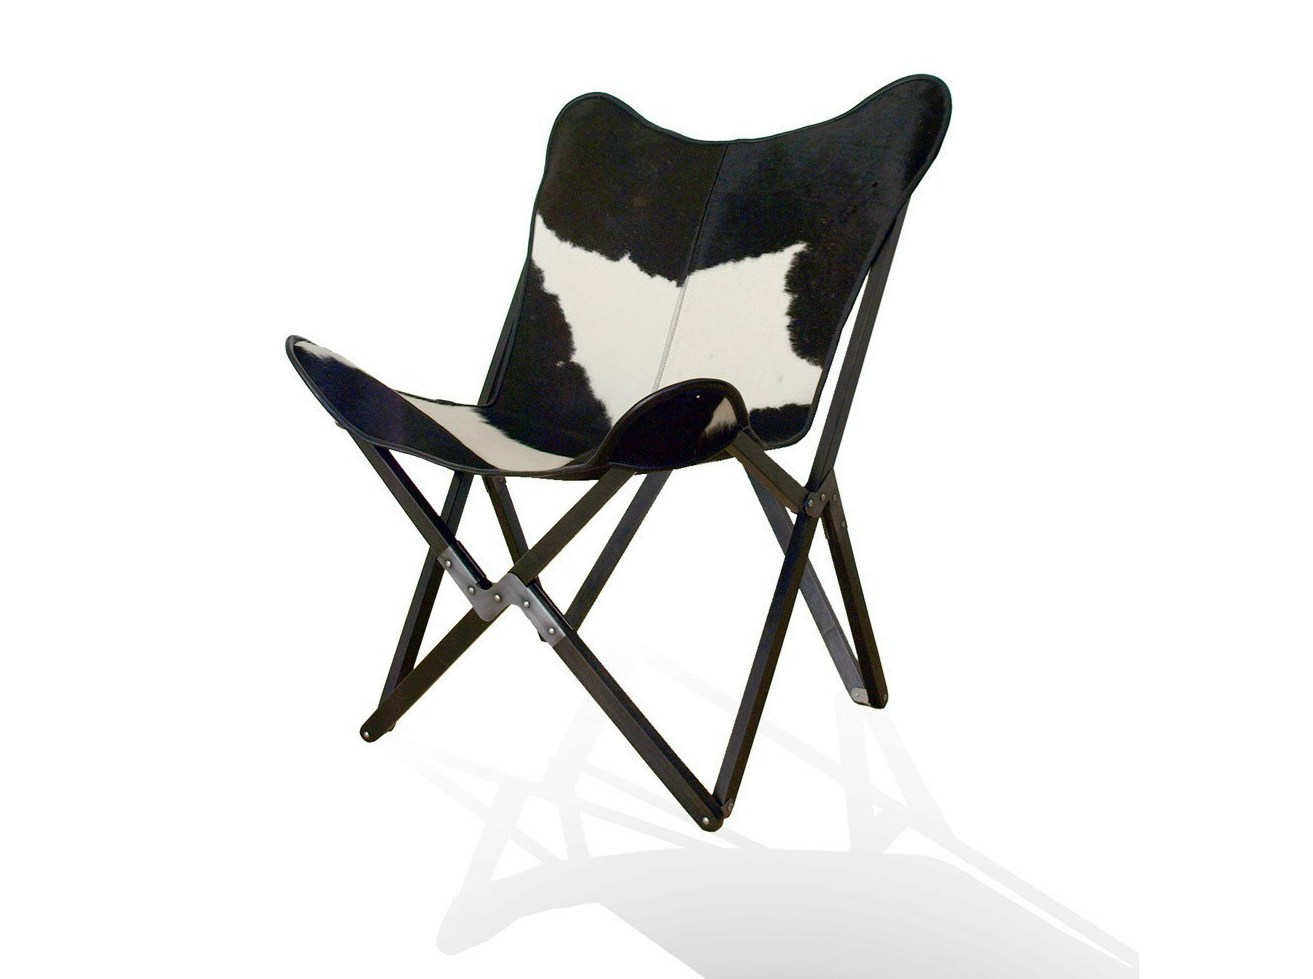 tripolina butterfly chair original by weinbaum design joseph b fenby. Black Bedroom Furniture Sets. Home Design Ideas